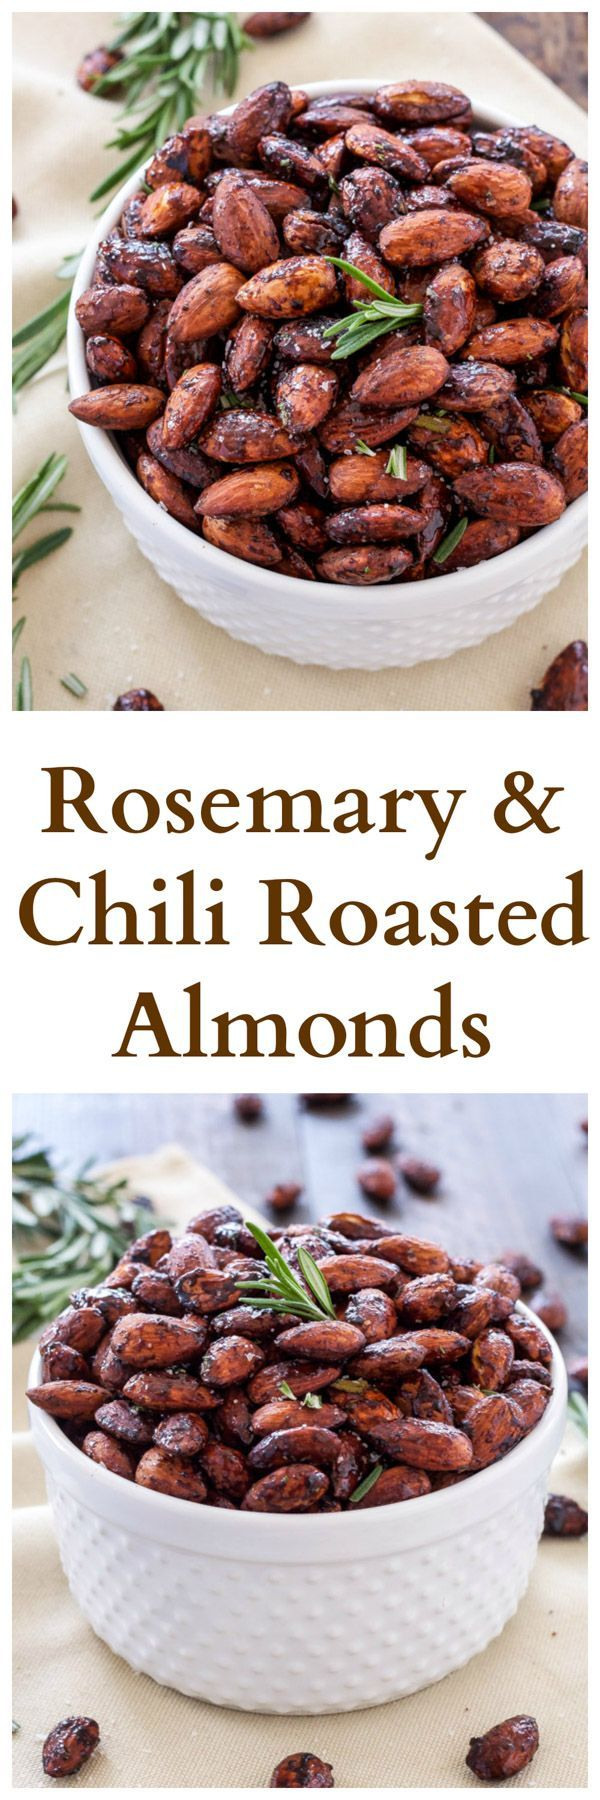 Roasted Almonds on Pinterest | Cinnamon Roasted Almonds, Honey Roasted ...